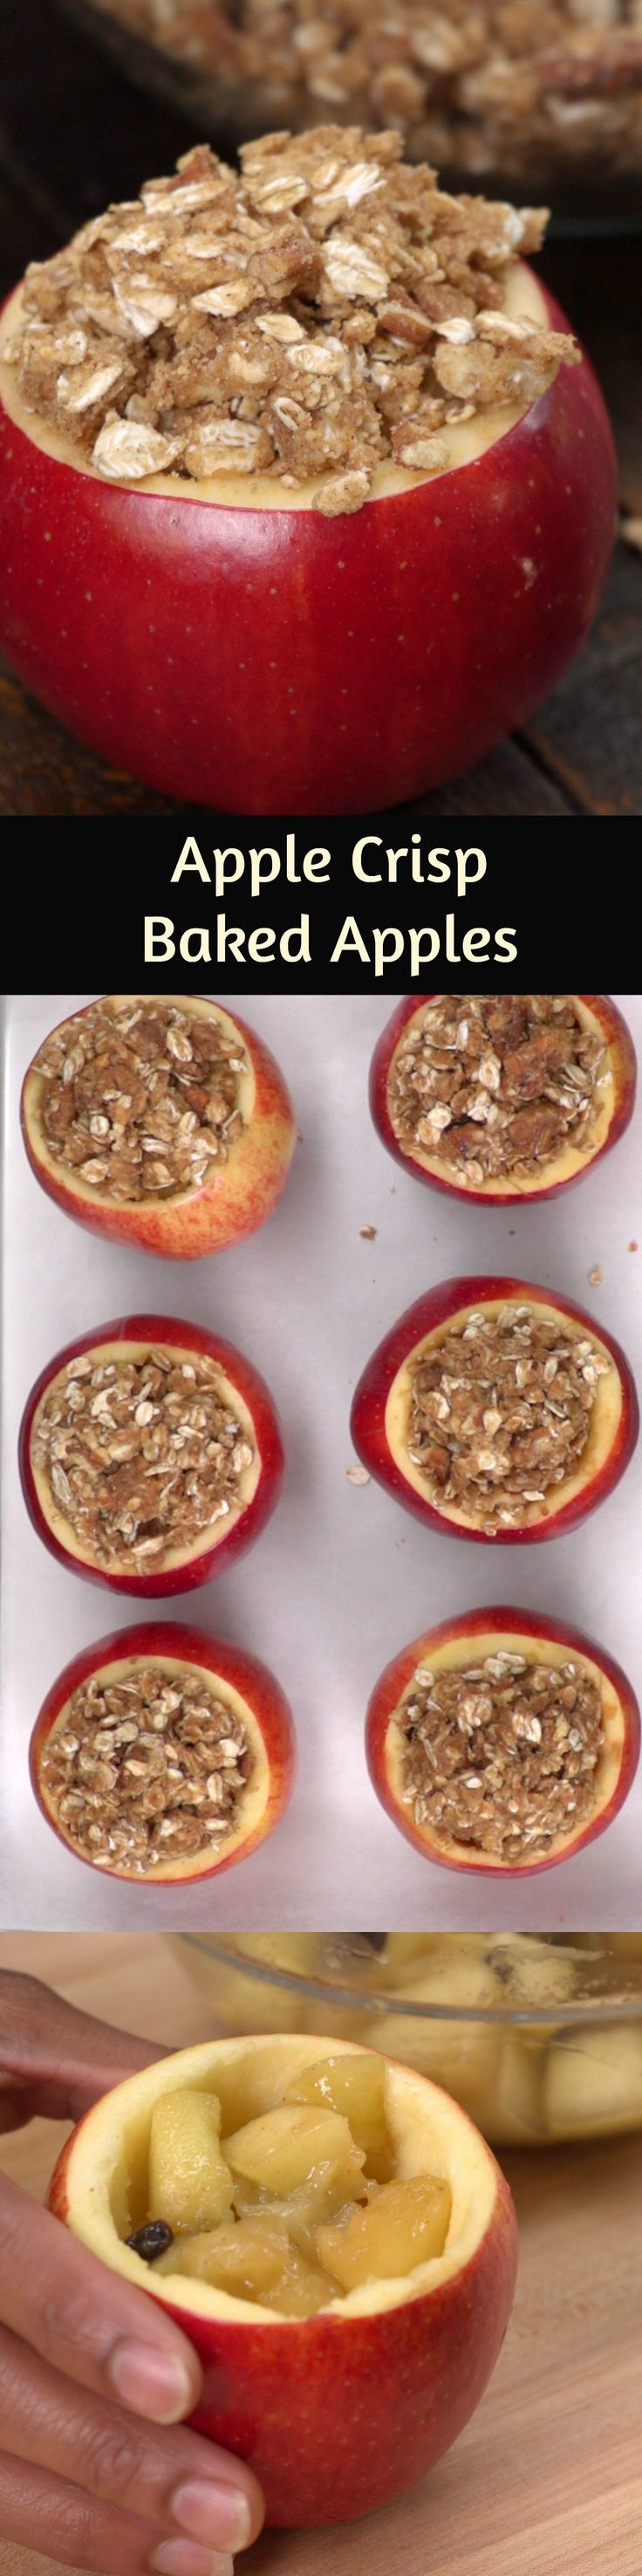 Apple Crisp Baked Apples. Easy to make. Contains Oats, Cinnamon, Pecans, and Maple Syrup. Wonderful Fall Apple Recipe.